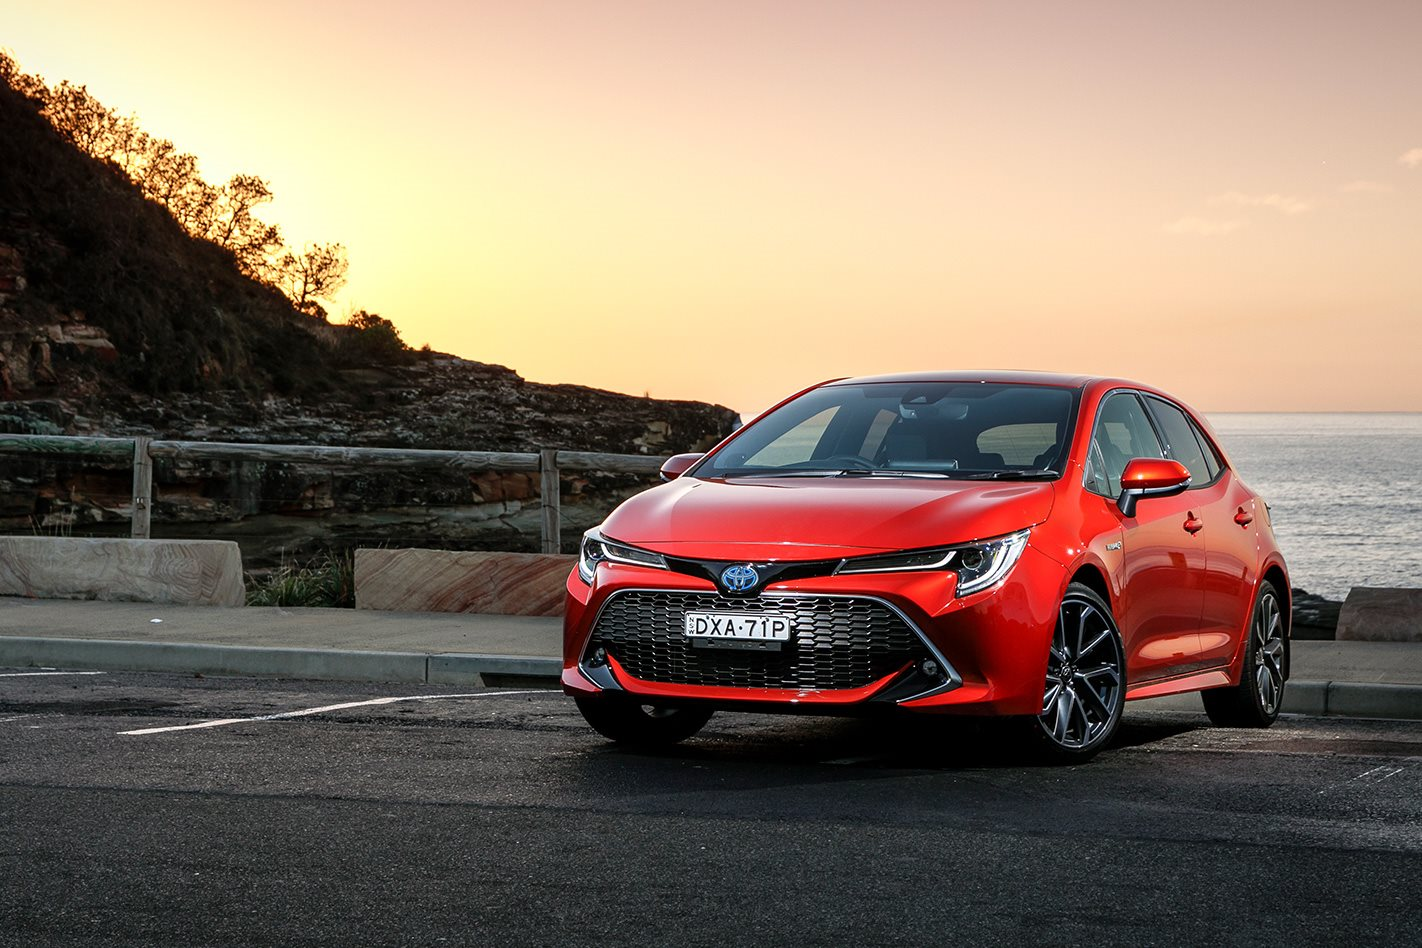 2019 Toyota Corolla Zr Hybrid Review